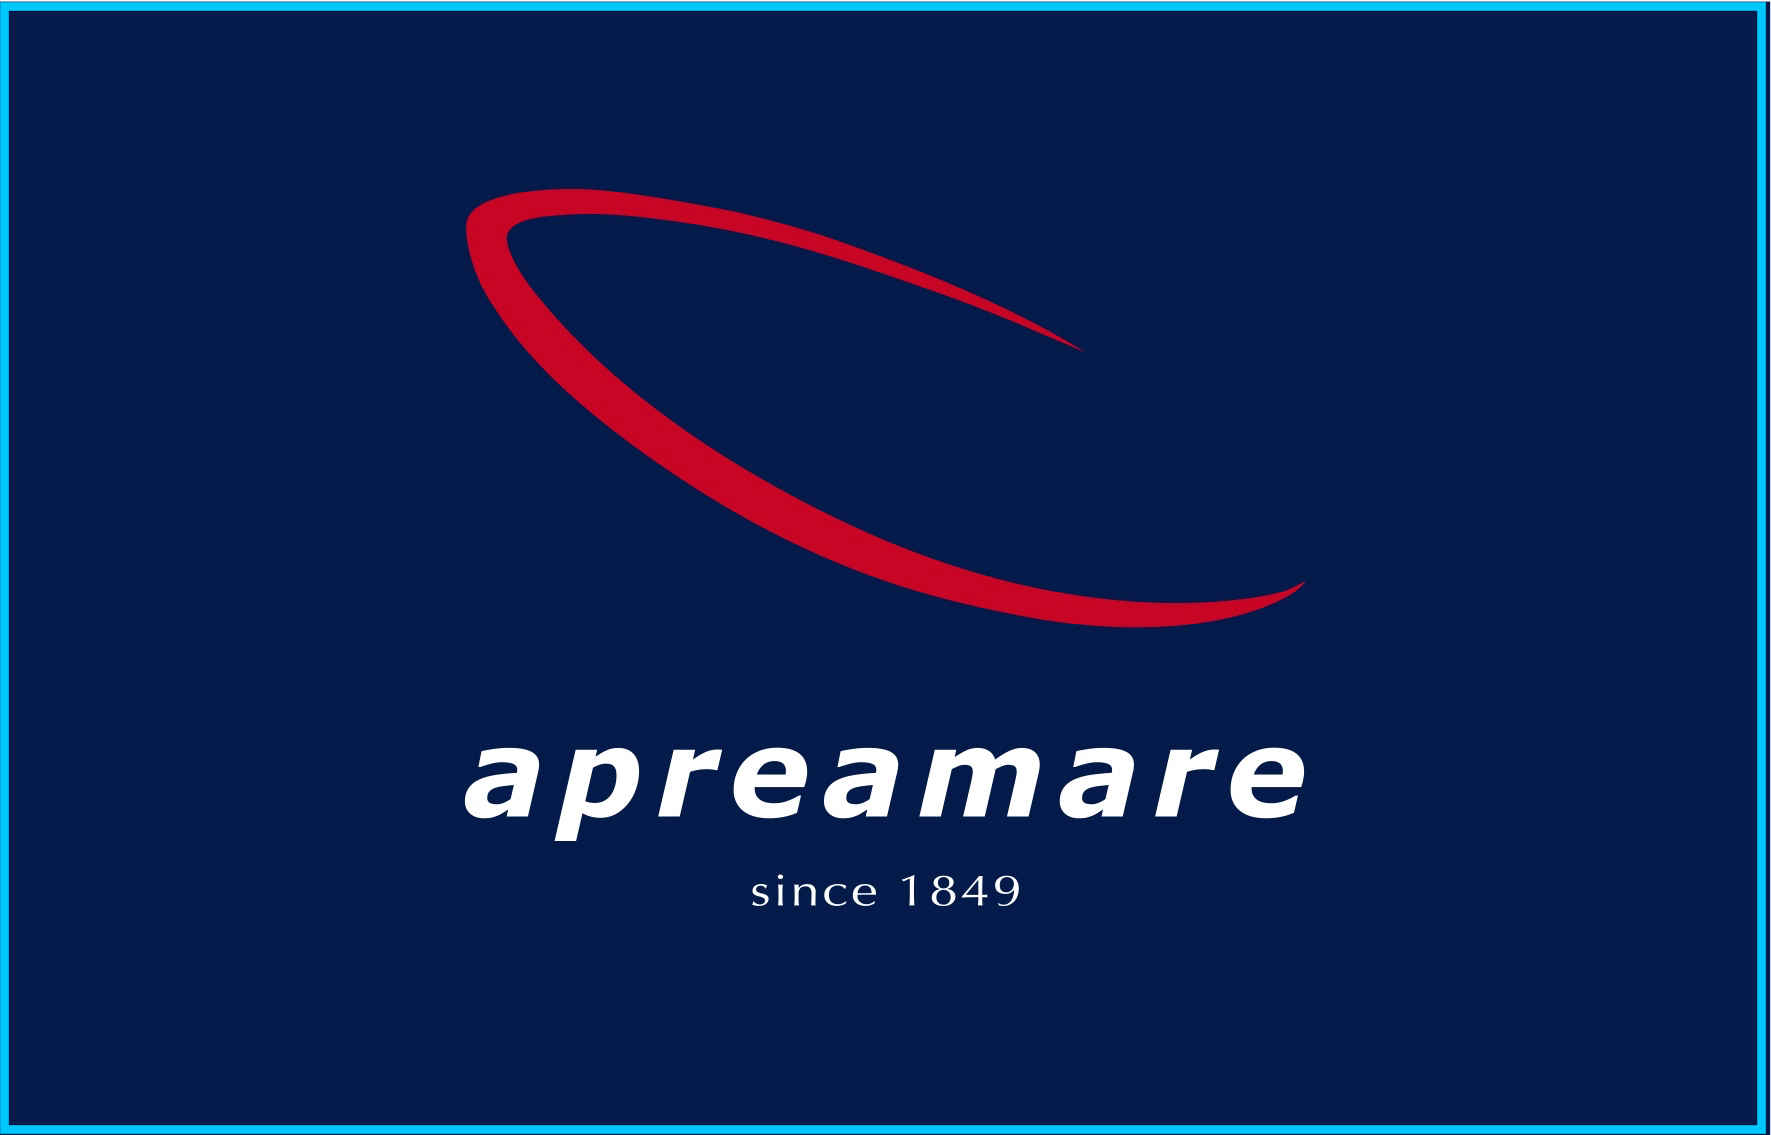 Commercial agreement with APREAMARE